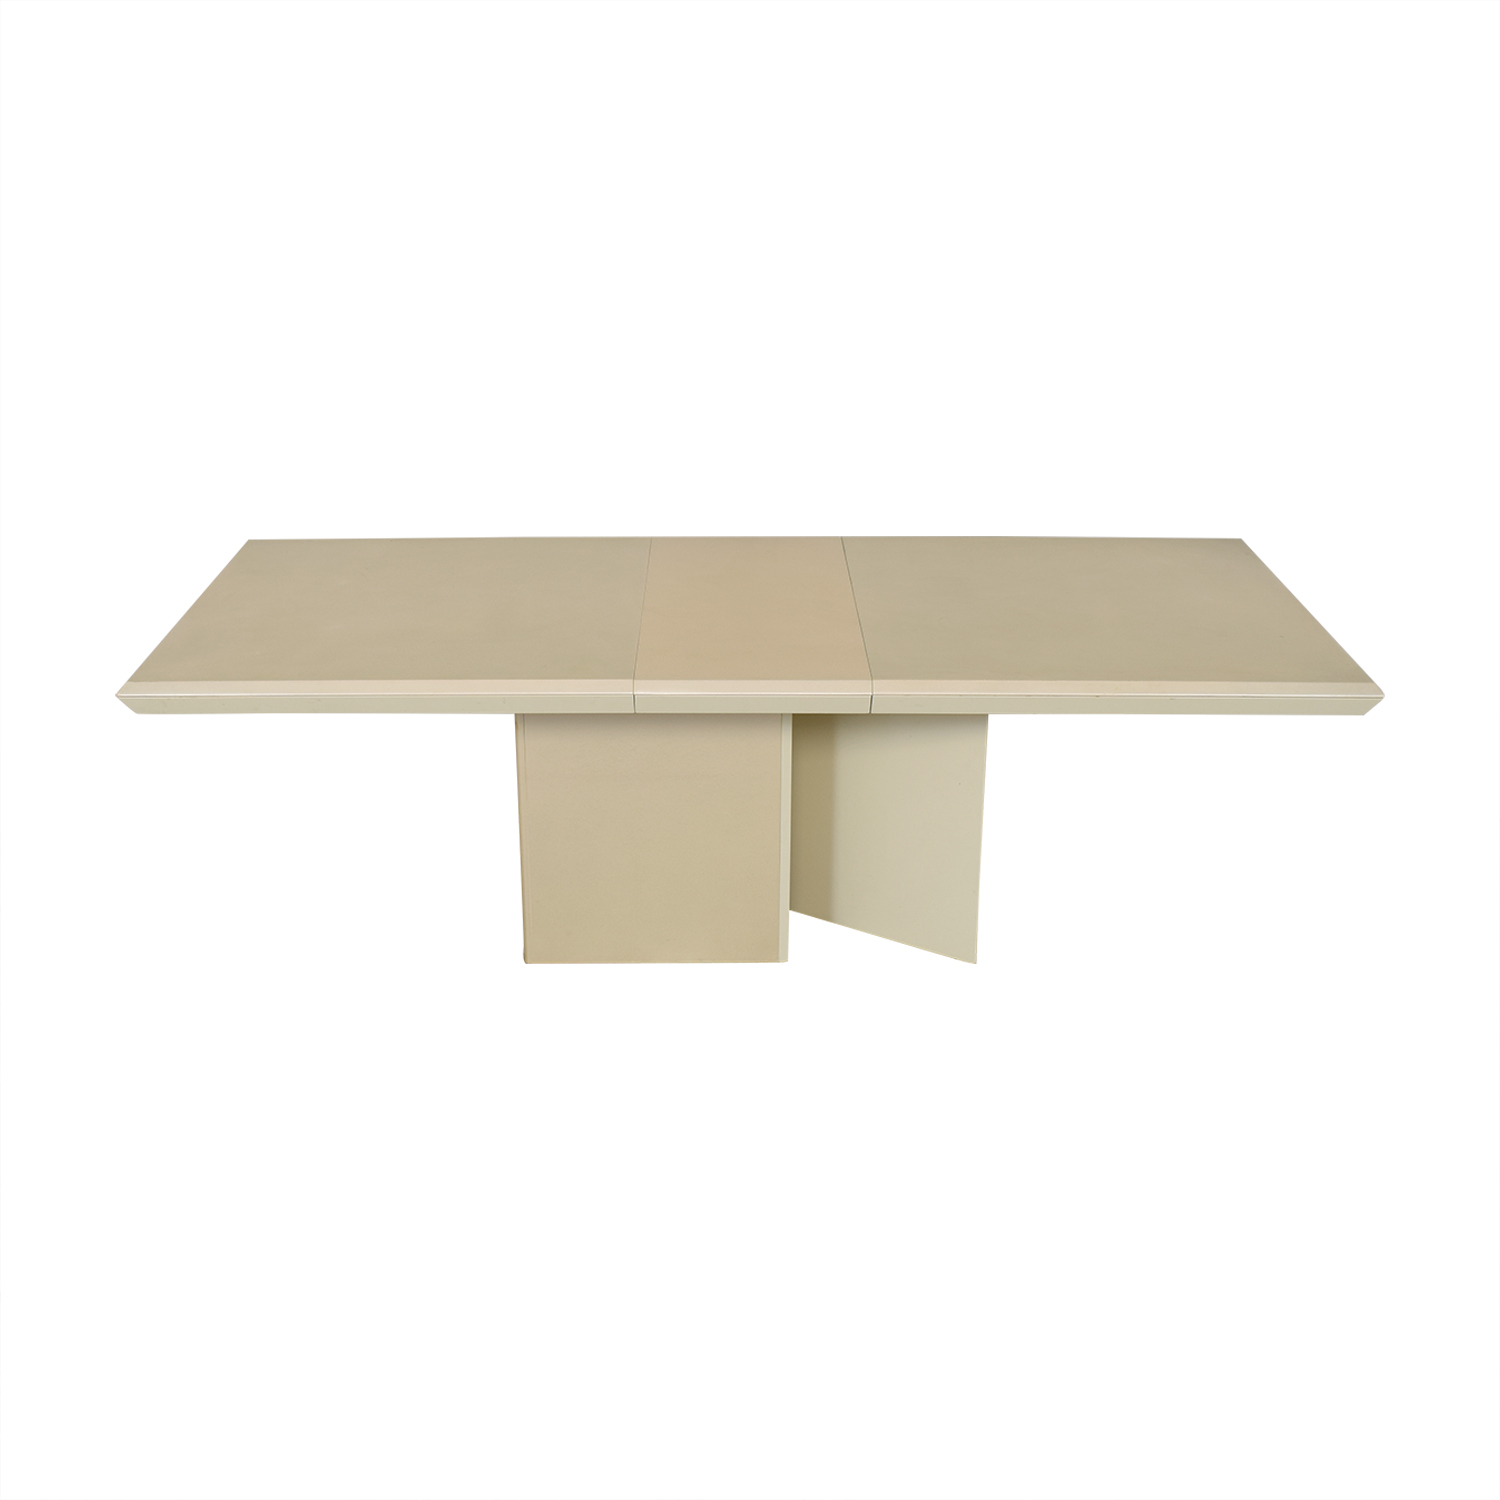 Carrier Furniture Carrier Furniture Extendable Dining Table dimensions